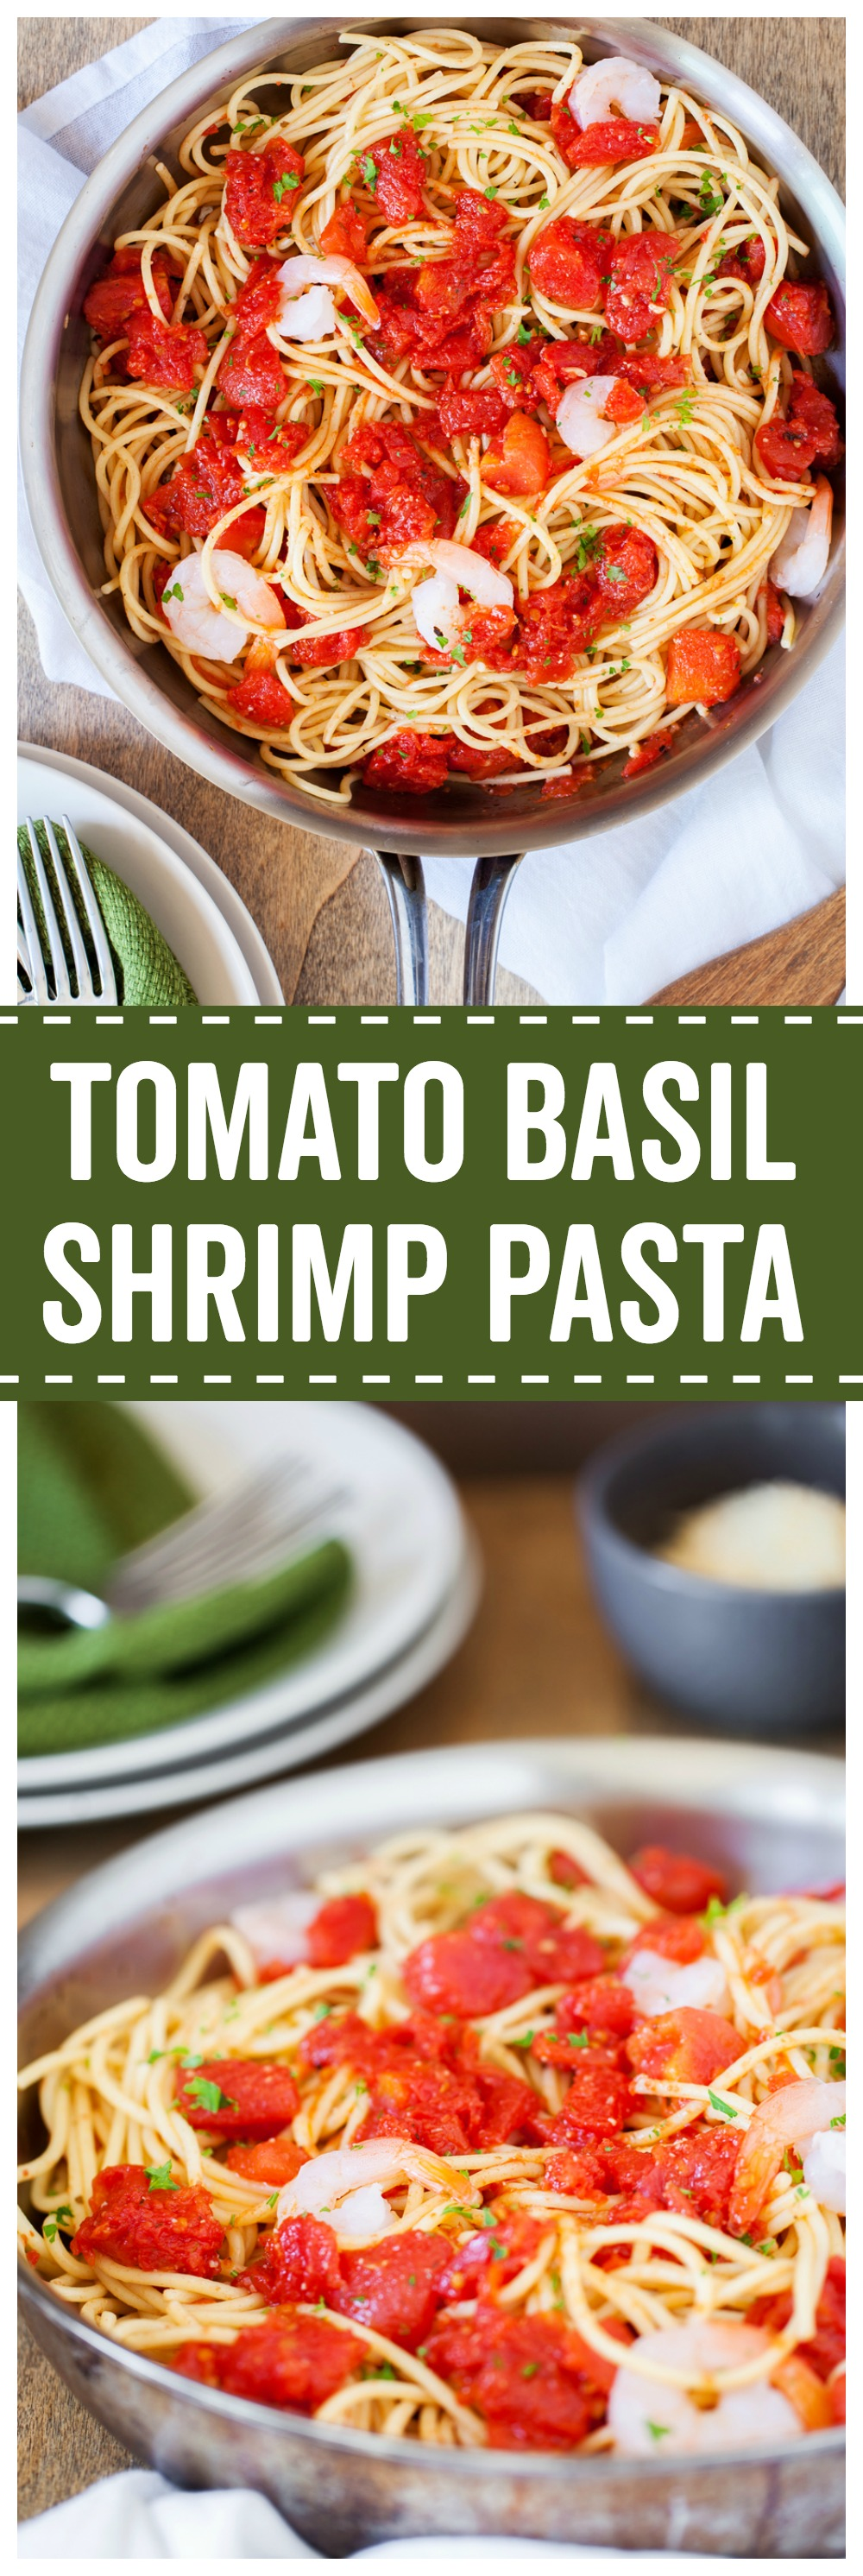 Tomato Basil Shrimp Pasta is a simple and delicious meal that is great for busy week nights!